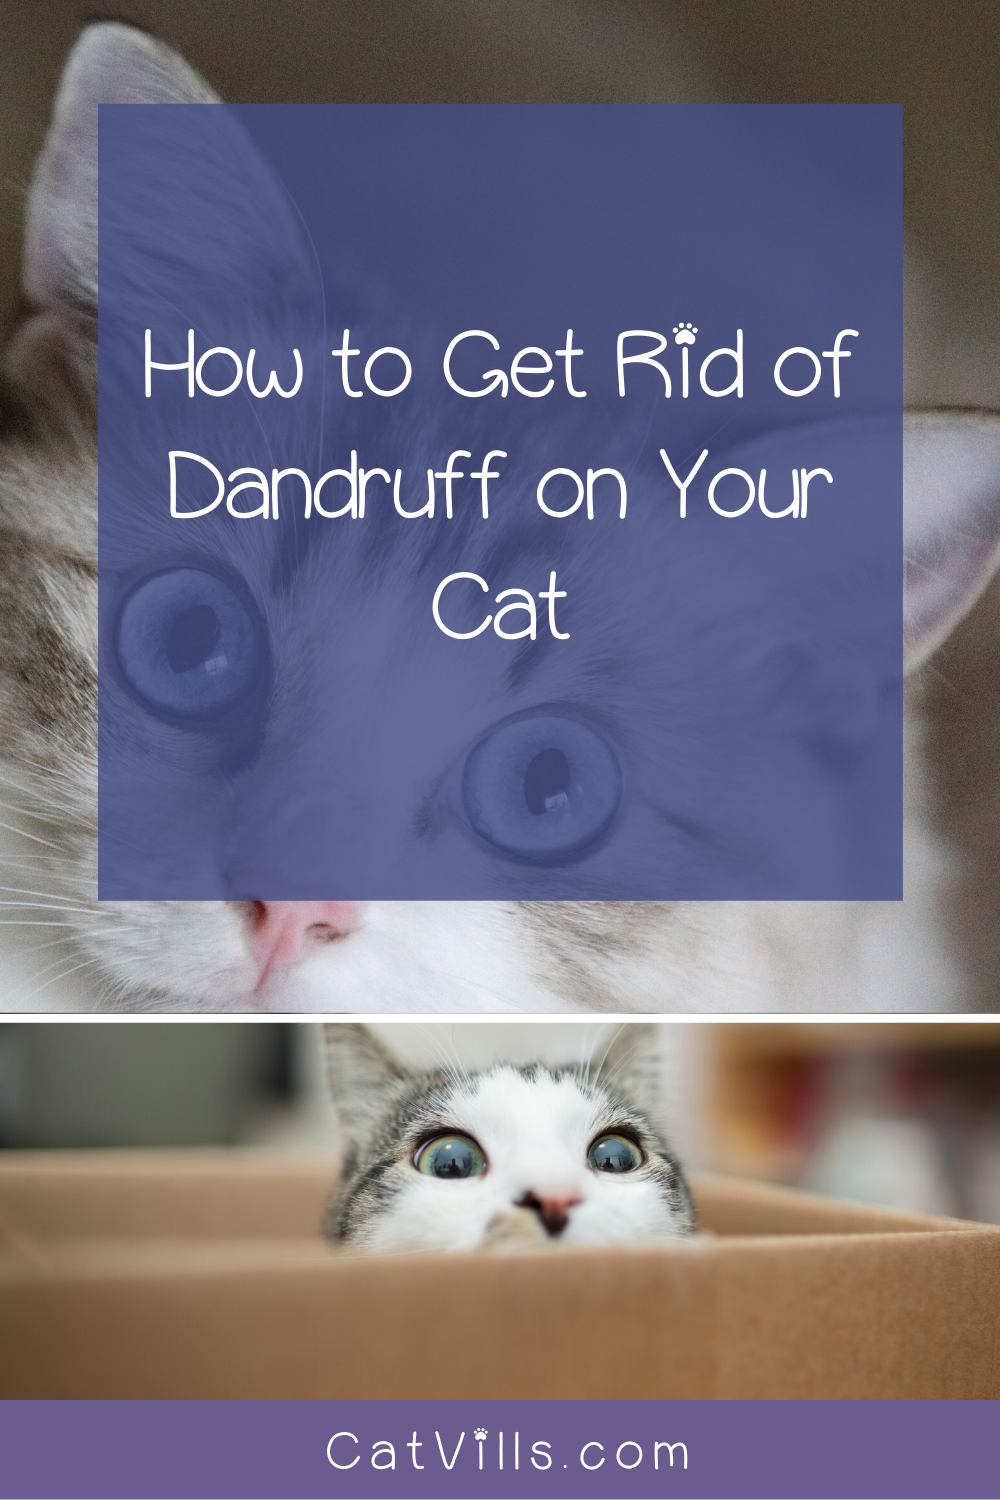 6 Easy Ways To Get Rid Of Dandruff On Your Cat Catvills In 2020 Cats Getting Rid Of Dandruff Cat Care